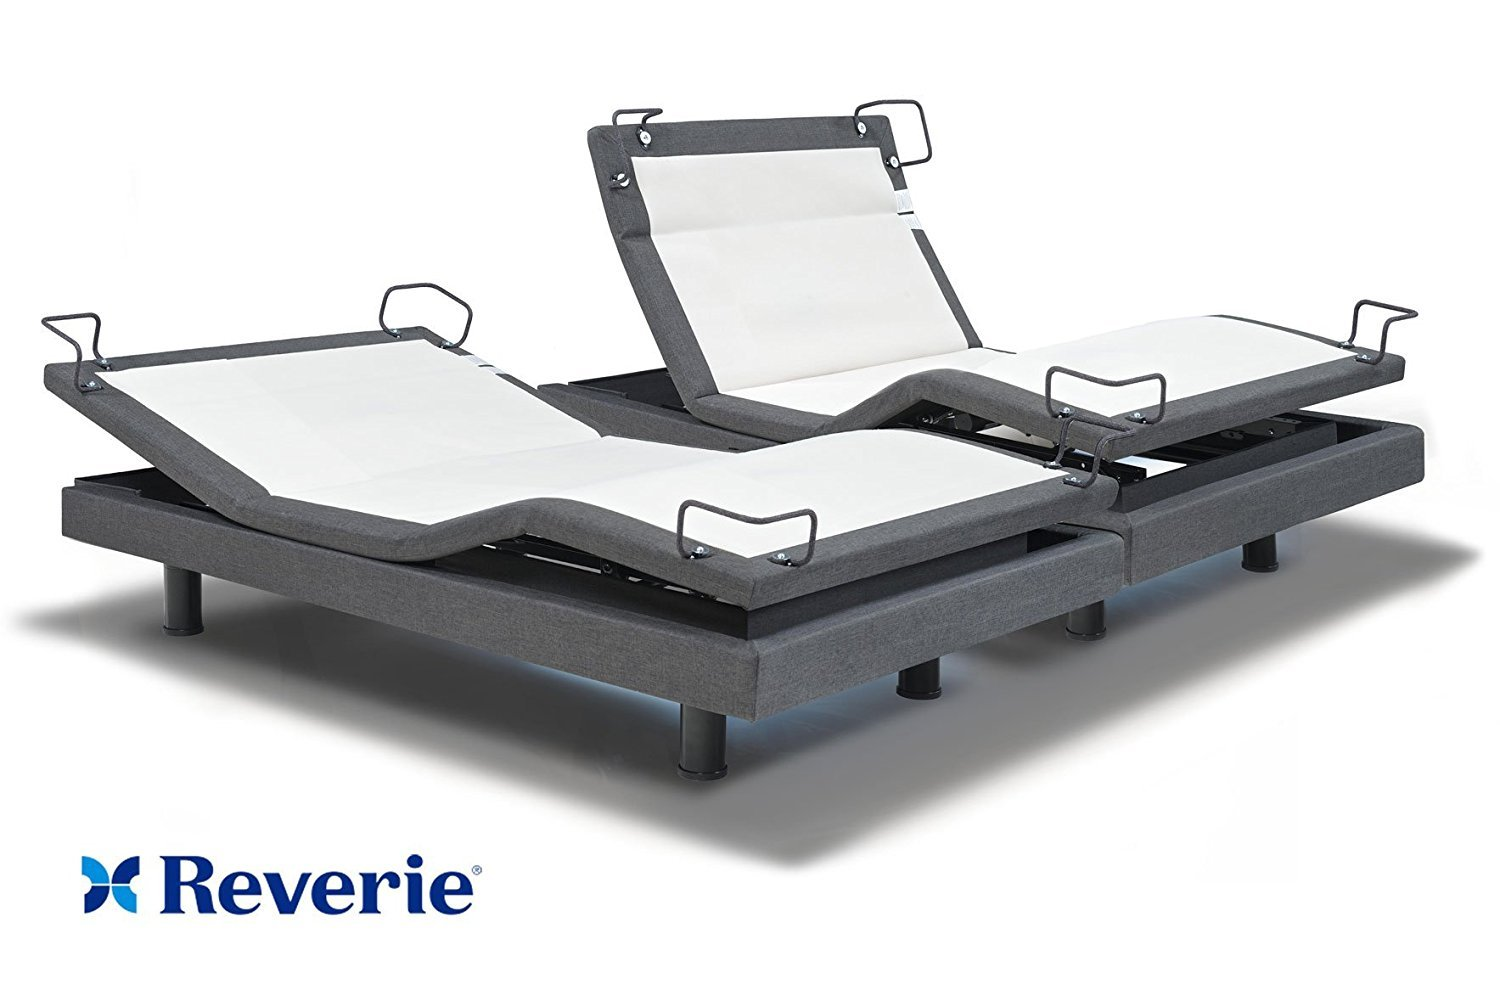 Reverie adjustable bed split king : Reverie q adjustable bed base split king in home delivery